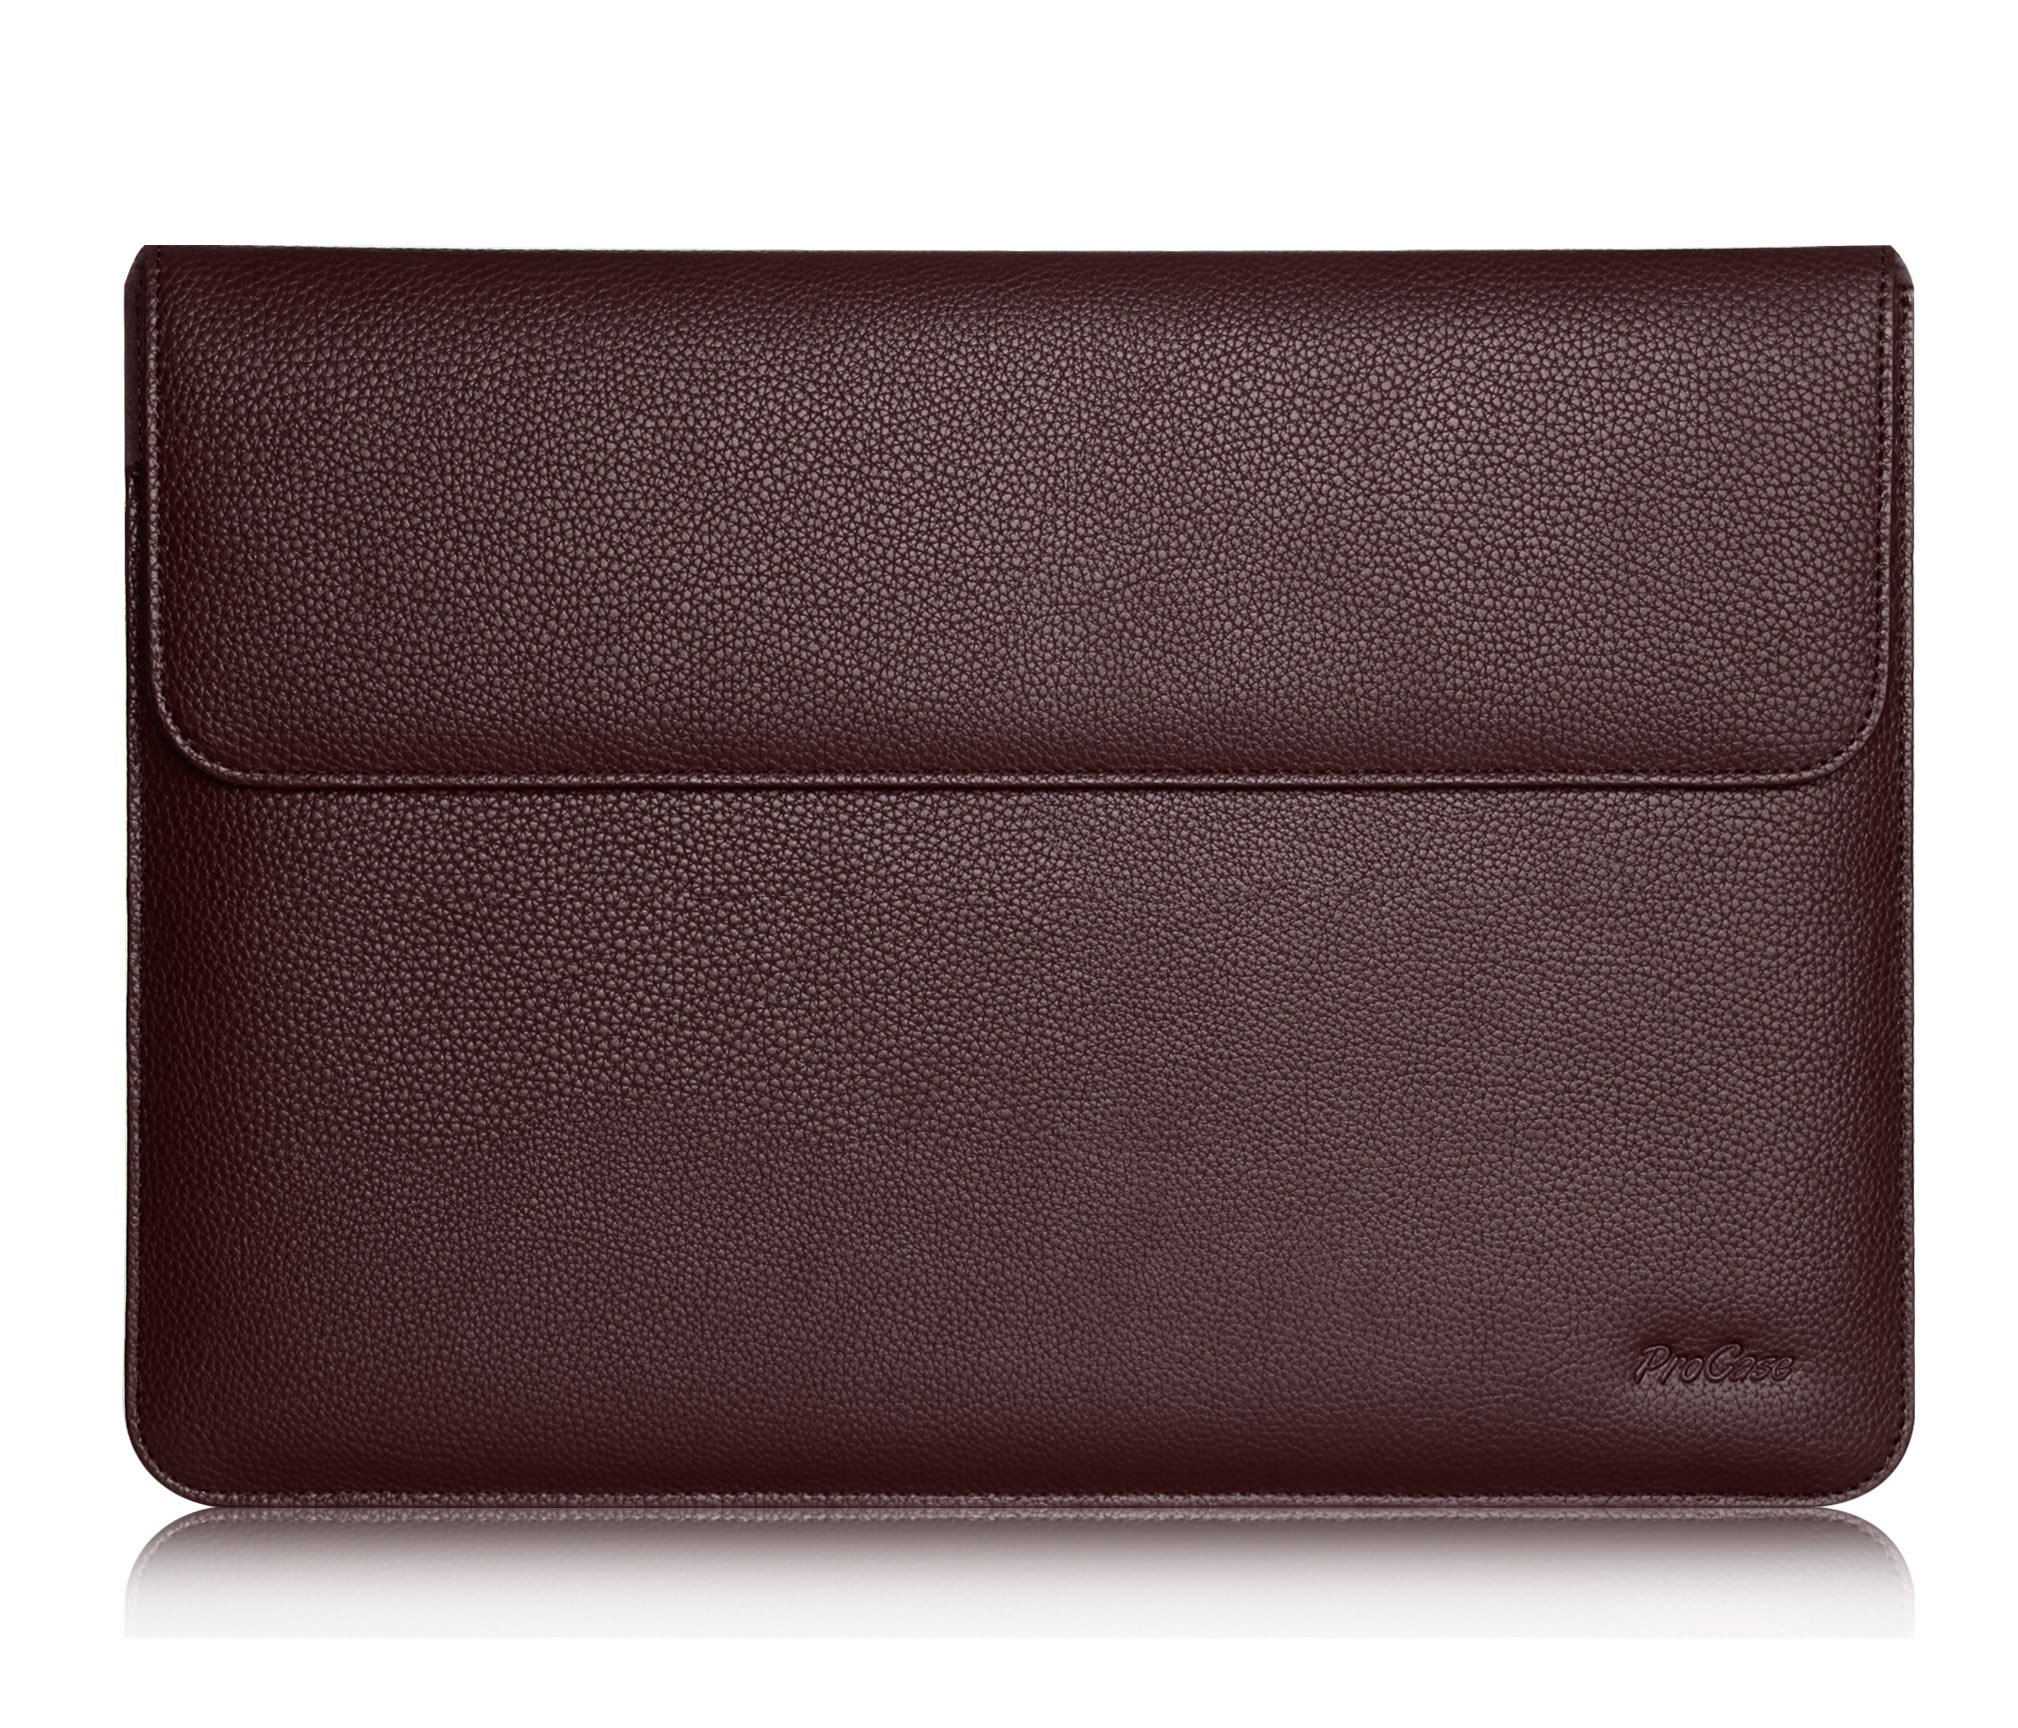 """Procase 9.7-10.5 Inch Wallet Sleeve Case for iPad 10.2 7th 2019,Air 10.5 2019, iPad Pro 9.7"""", iPad Pro 10.5, iPad Air/Air 2, Galaxy Tab S3 S2 9.7/Tab A 10.1, Document Pocket and Pen Holder (Brown)"""